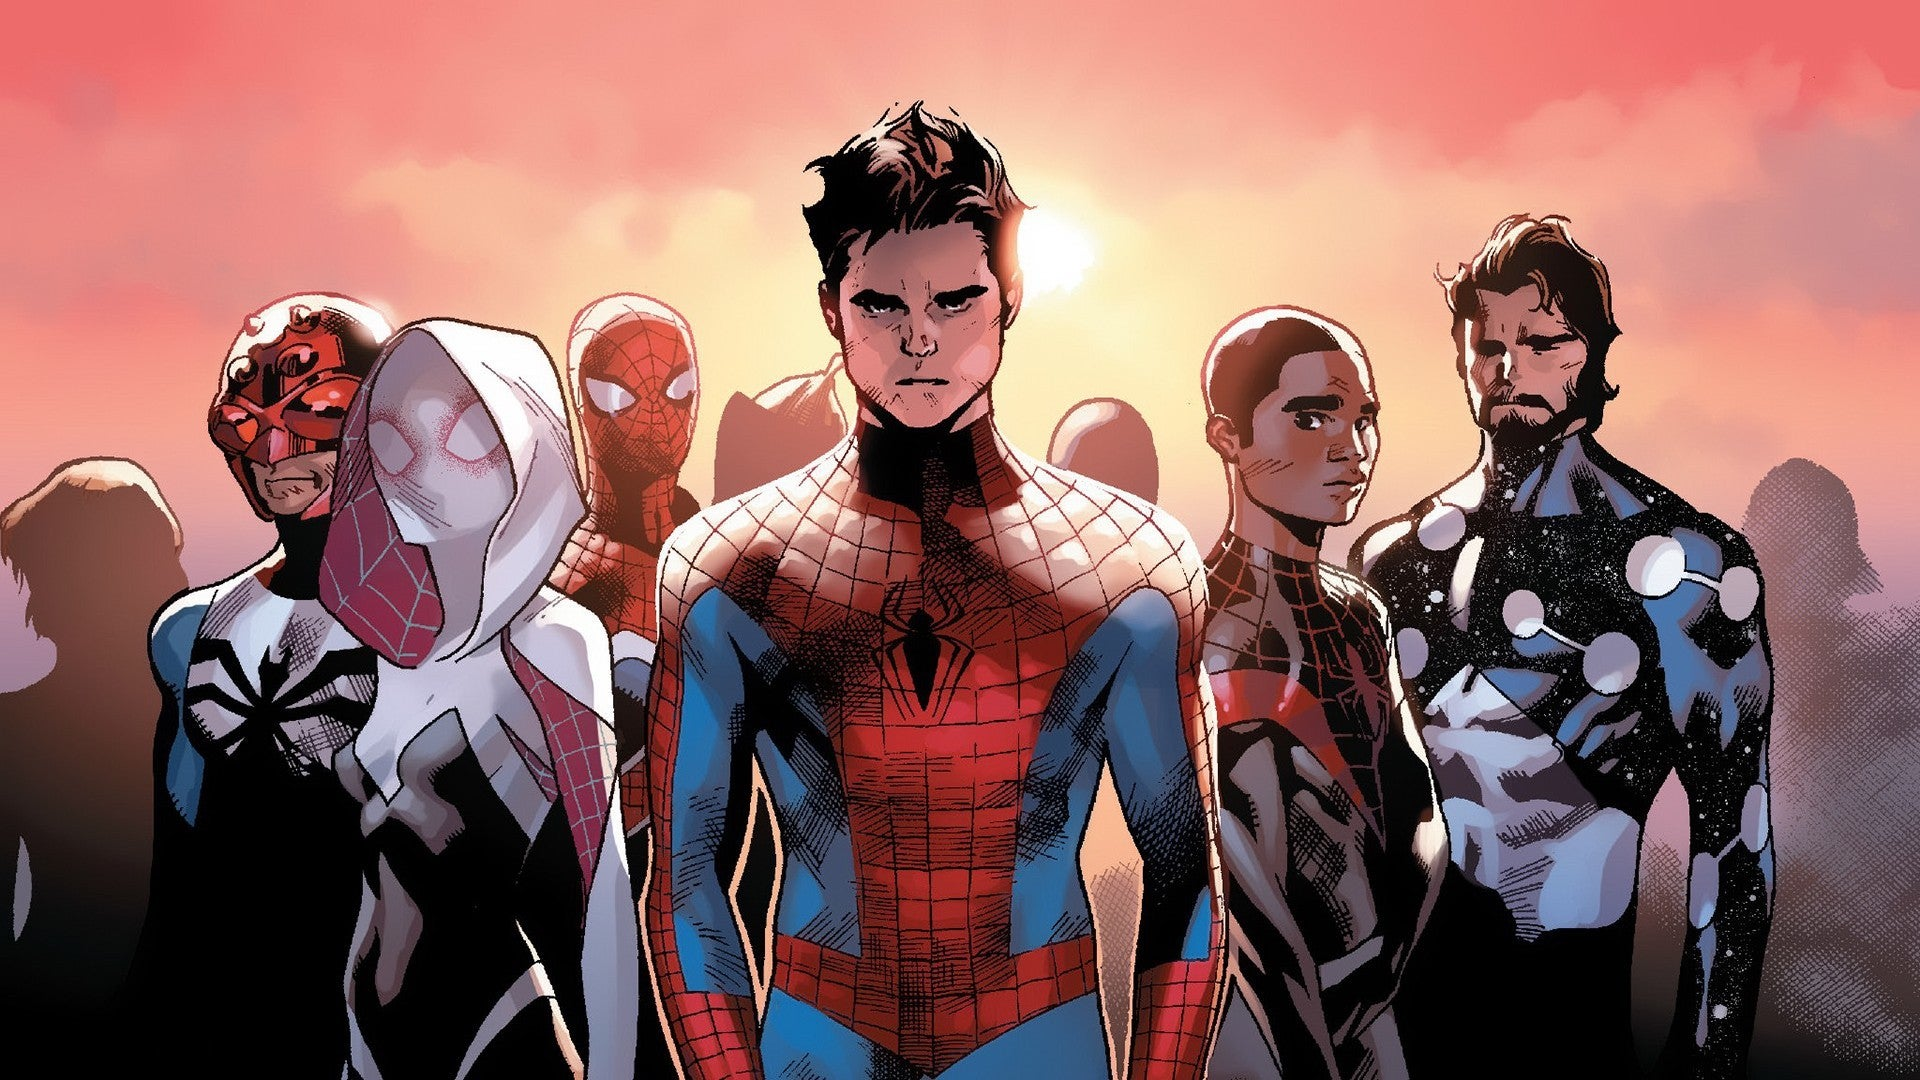 Now That Spider-Man's A Part Of Marvel's Cinematic Universe, He Needs His Own Team